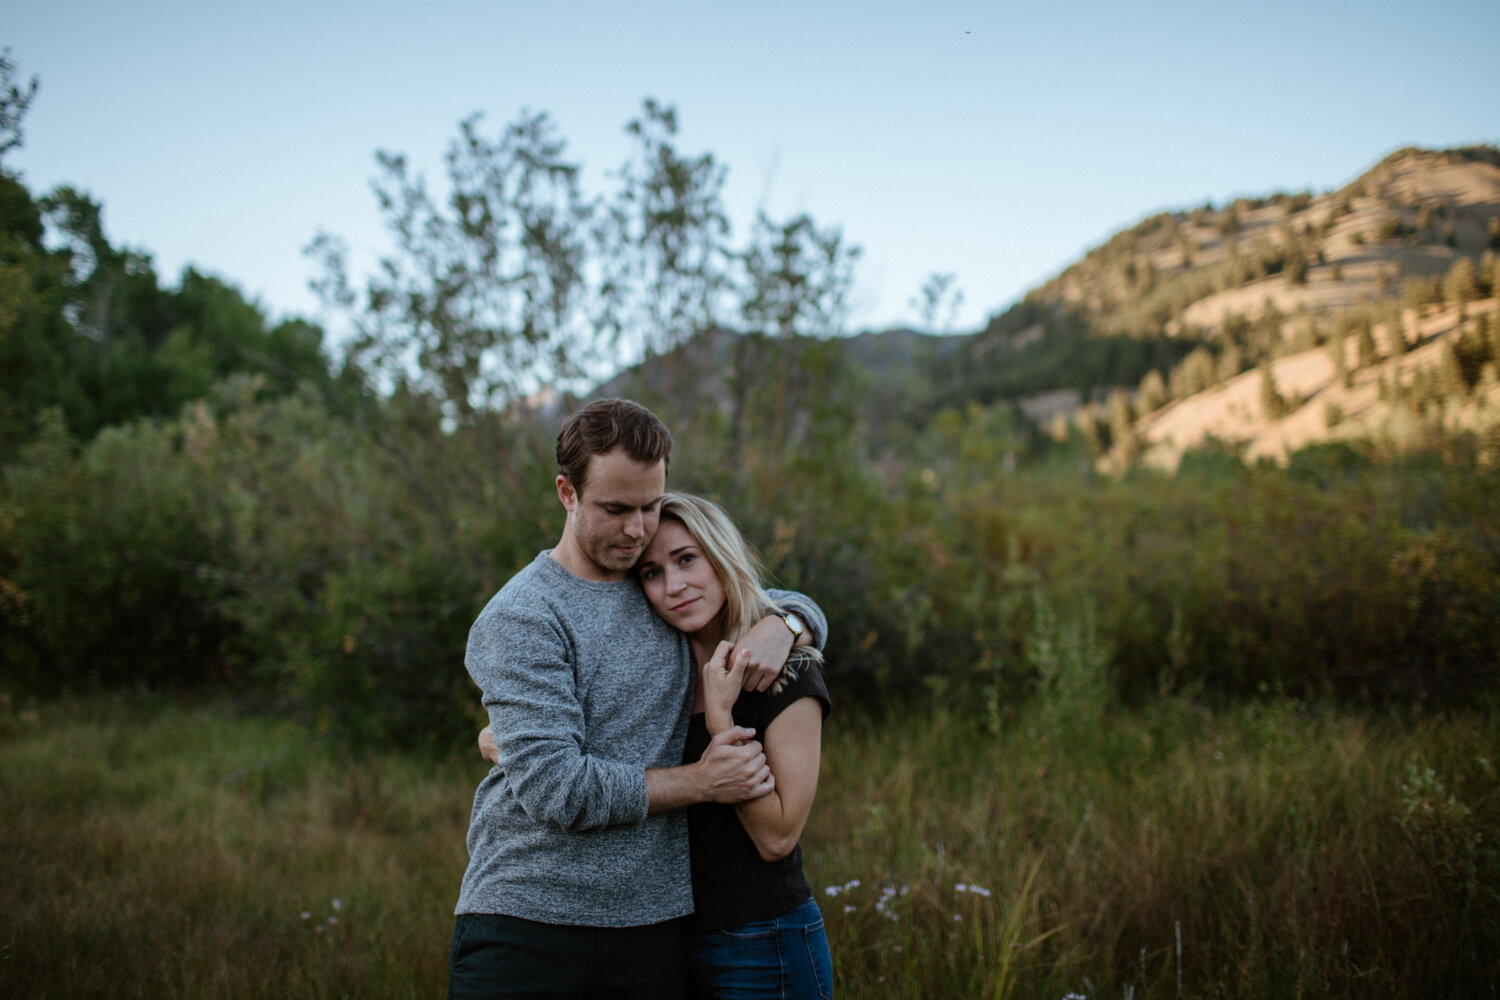 sun-valley-engagement-photos-christinemarie-52.jpg